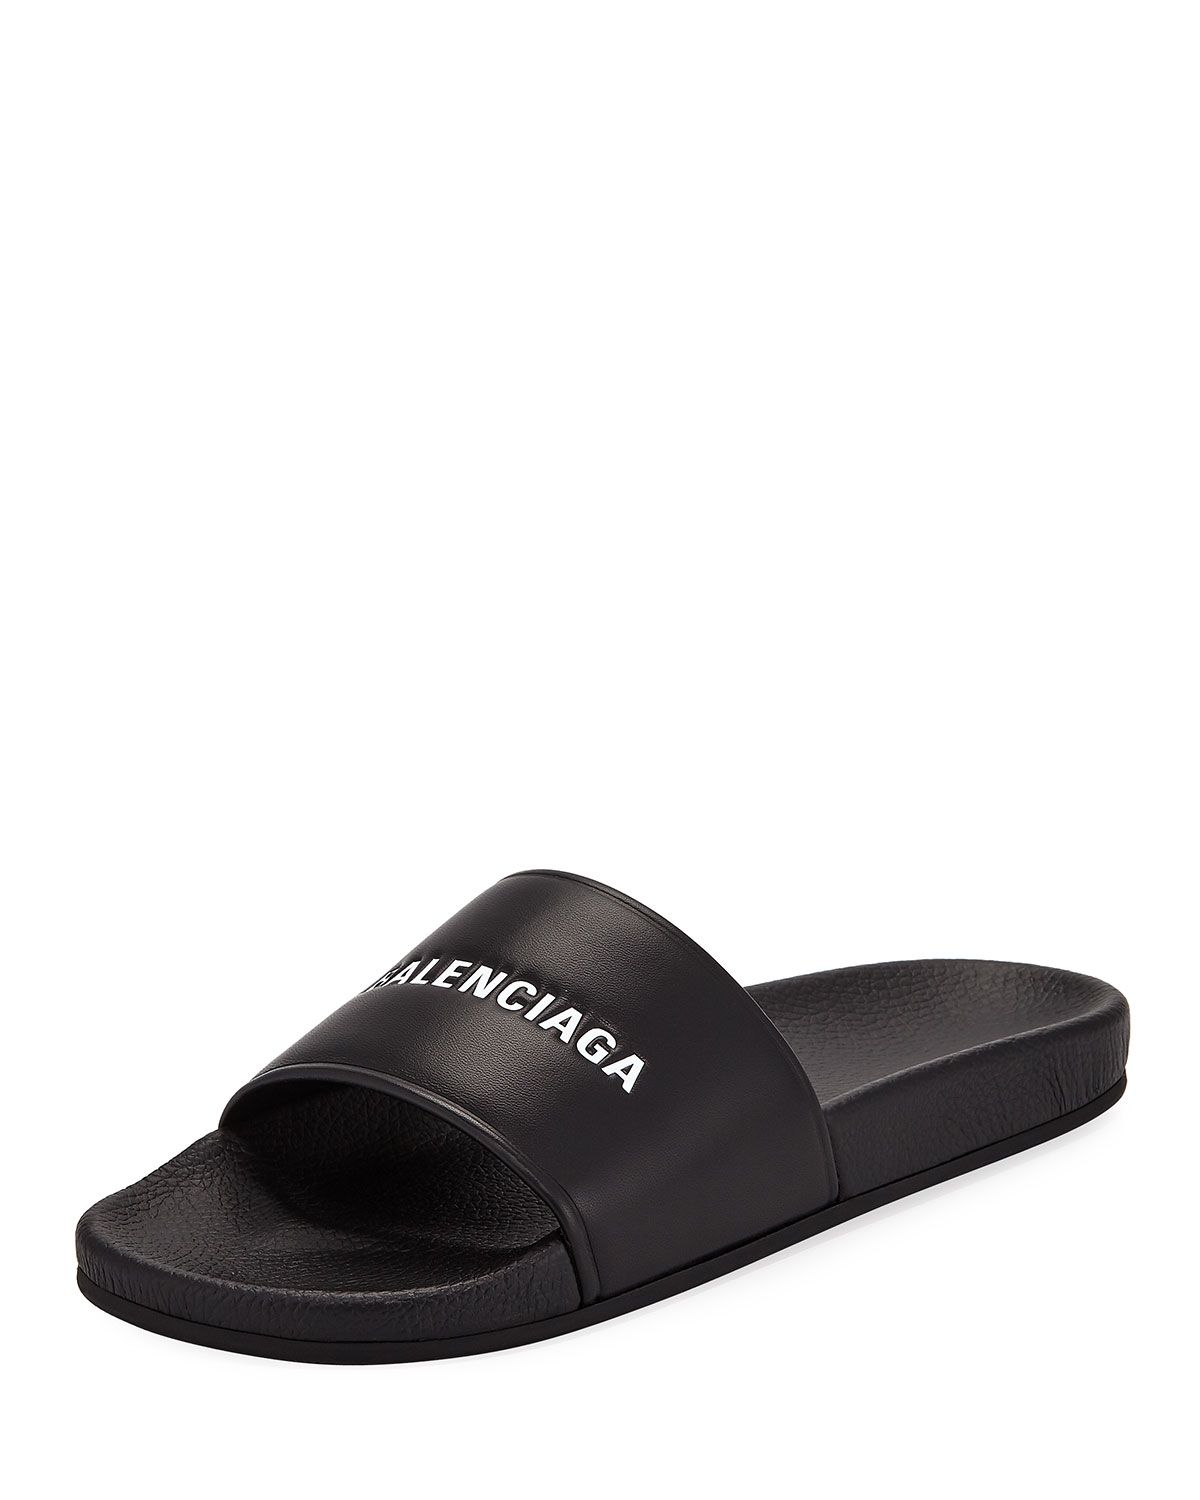 9c232d1dc BALENCIAGA EMBOSSED LOGO POOL SLIDE SANDAL. #balenciaga #shoes ...